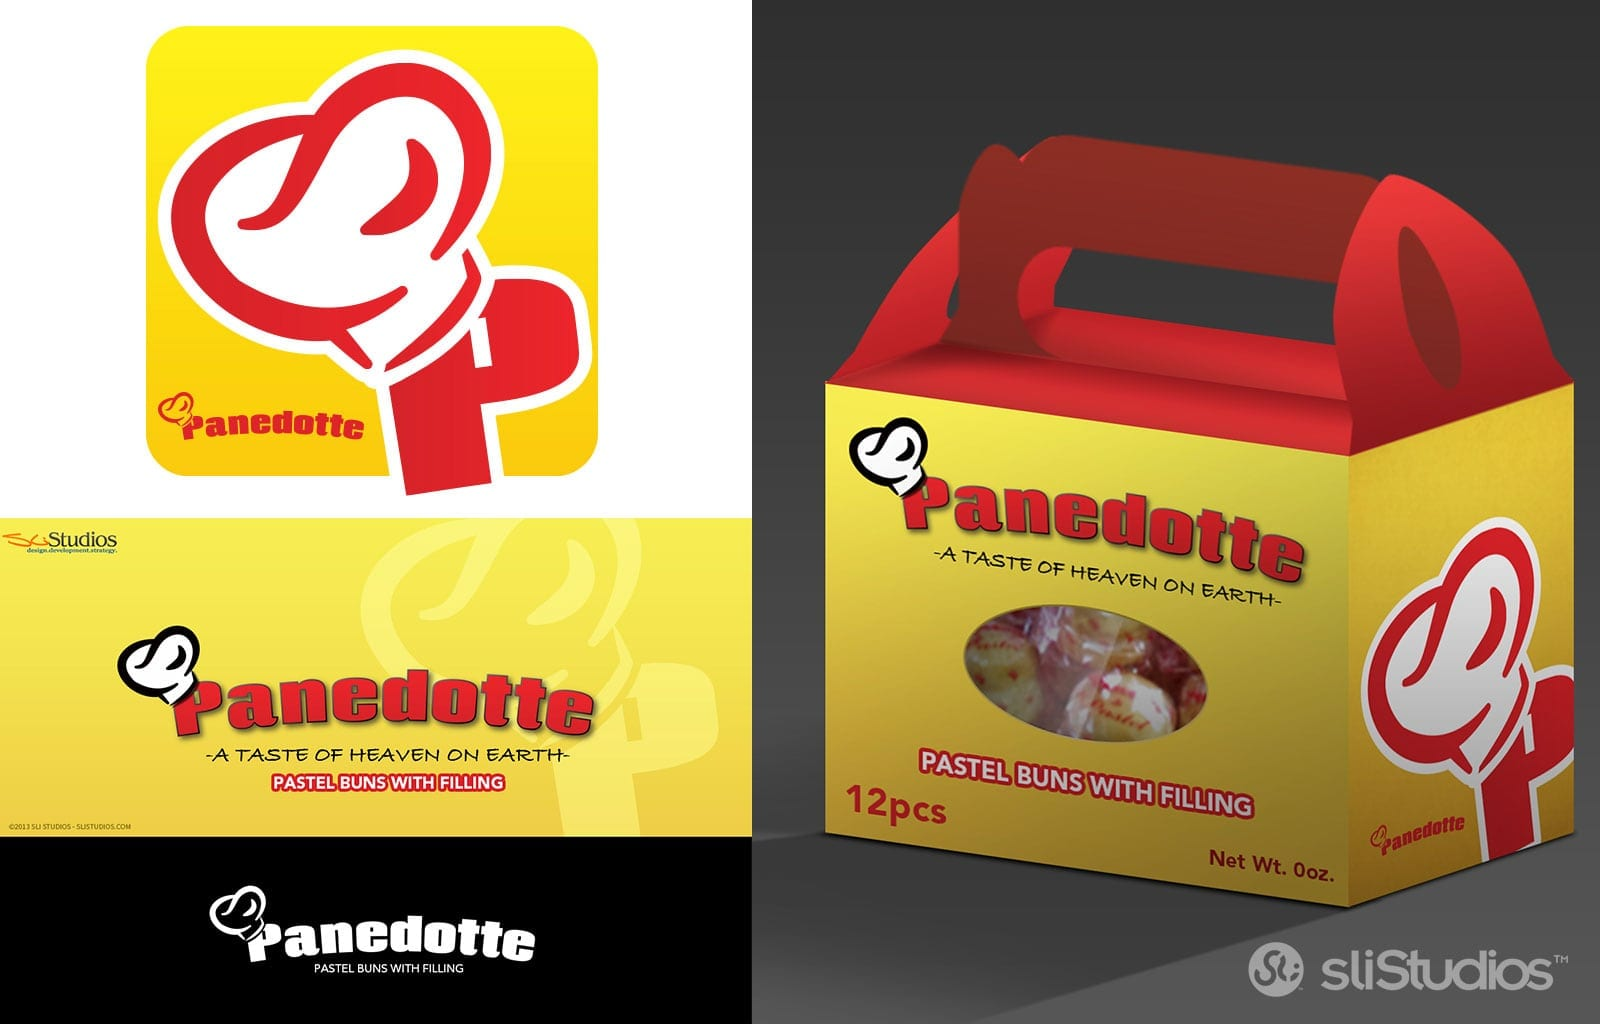 Panedotte Packaging Design - sliStudios - Miami